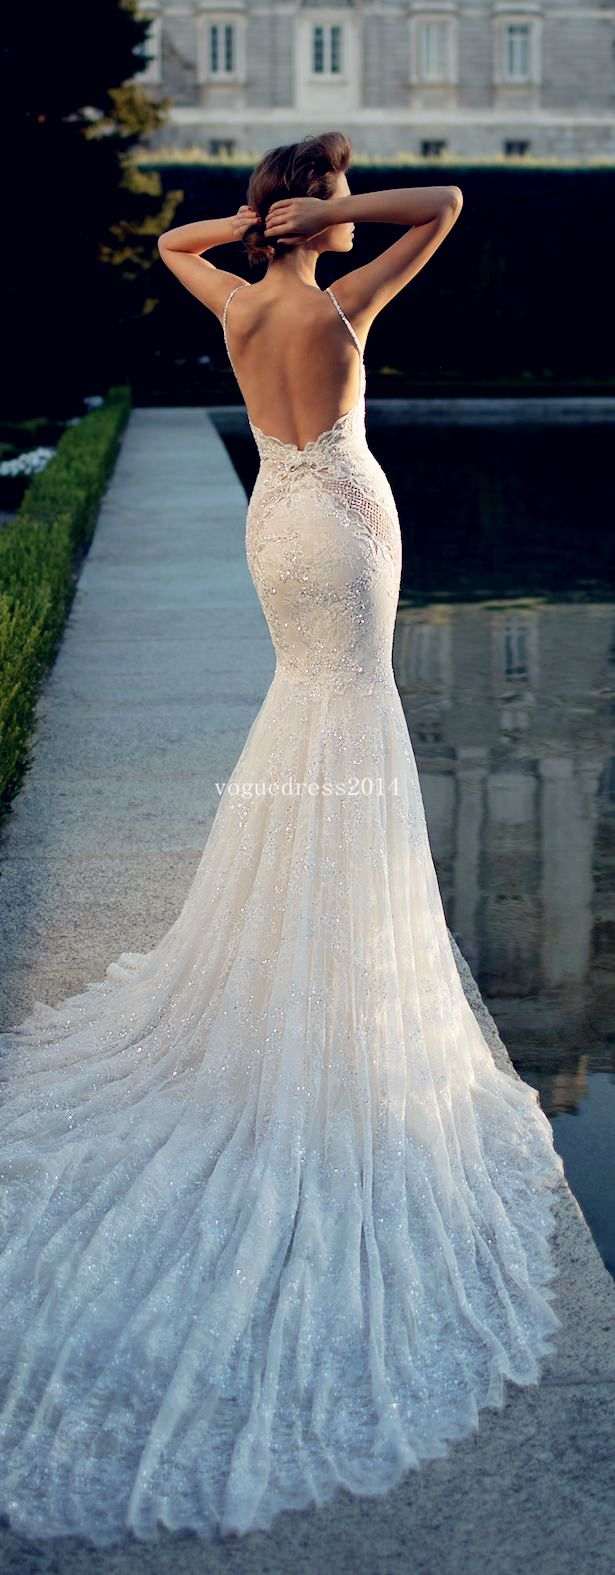 603 best Wedding Dresses images on Pinterest | Bridal gowns, Gown ...